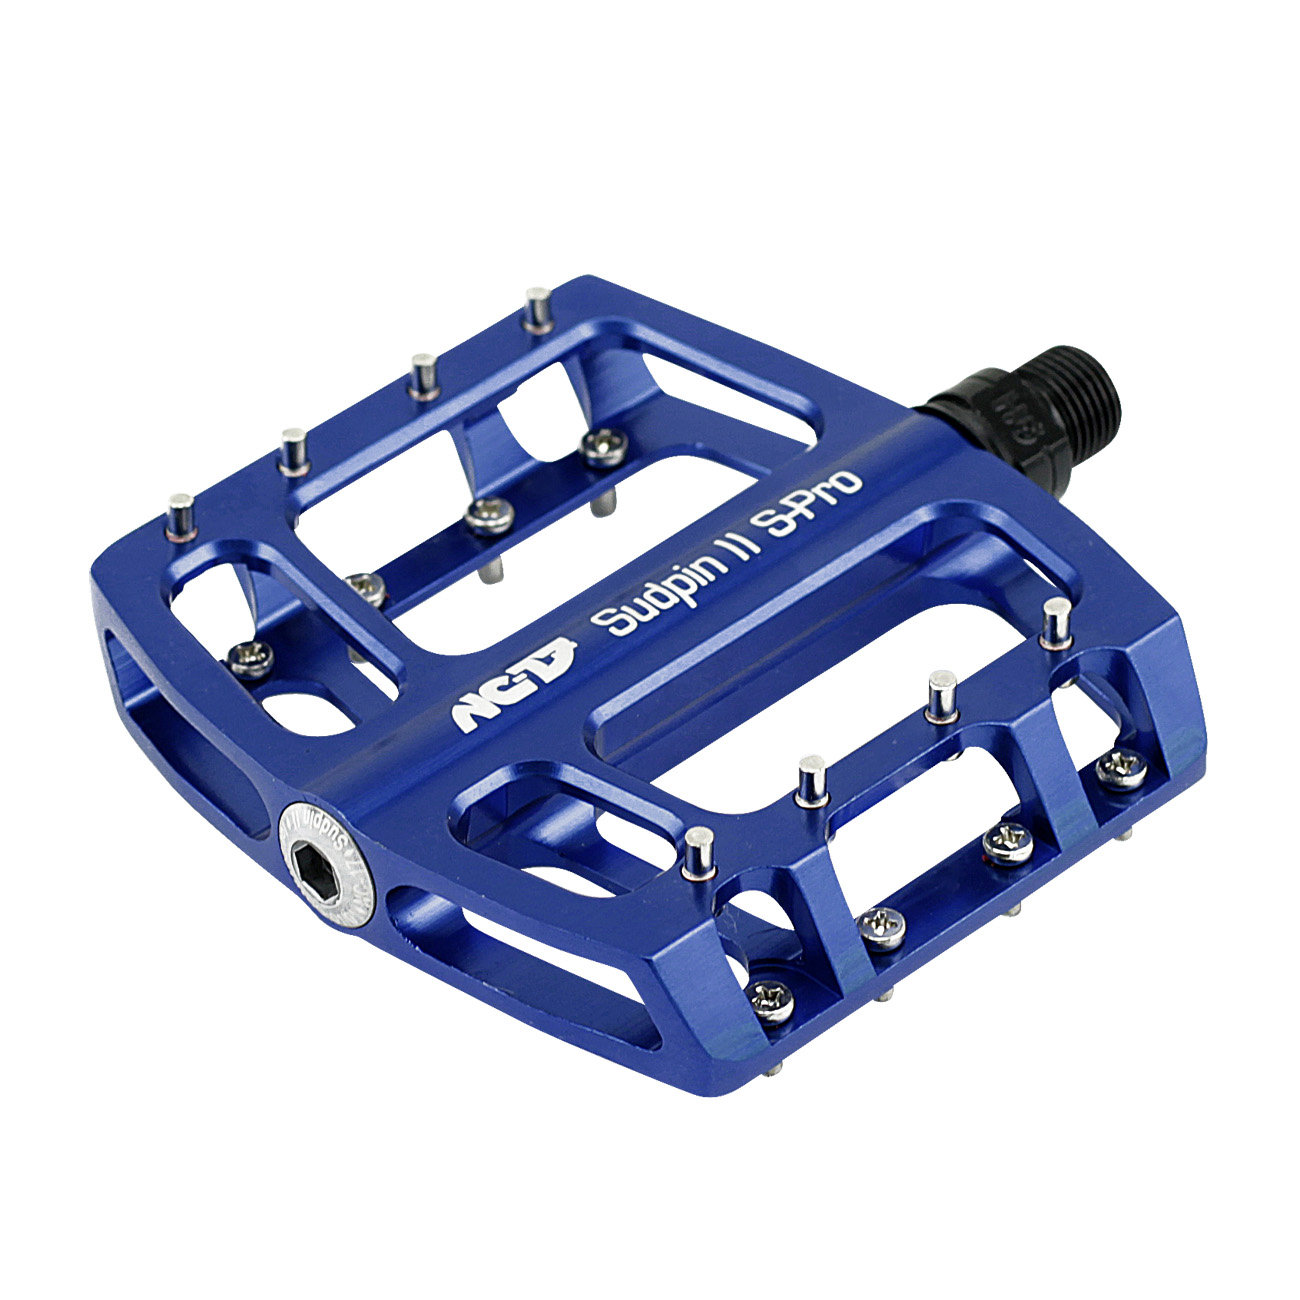 NC-17 Sudpin II S-Pro CNC<br/>Pedal, blau, Präzisionslager<br/>